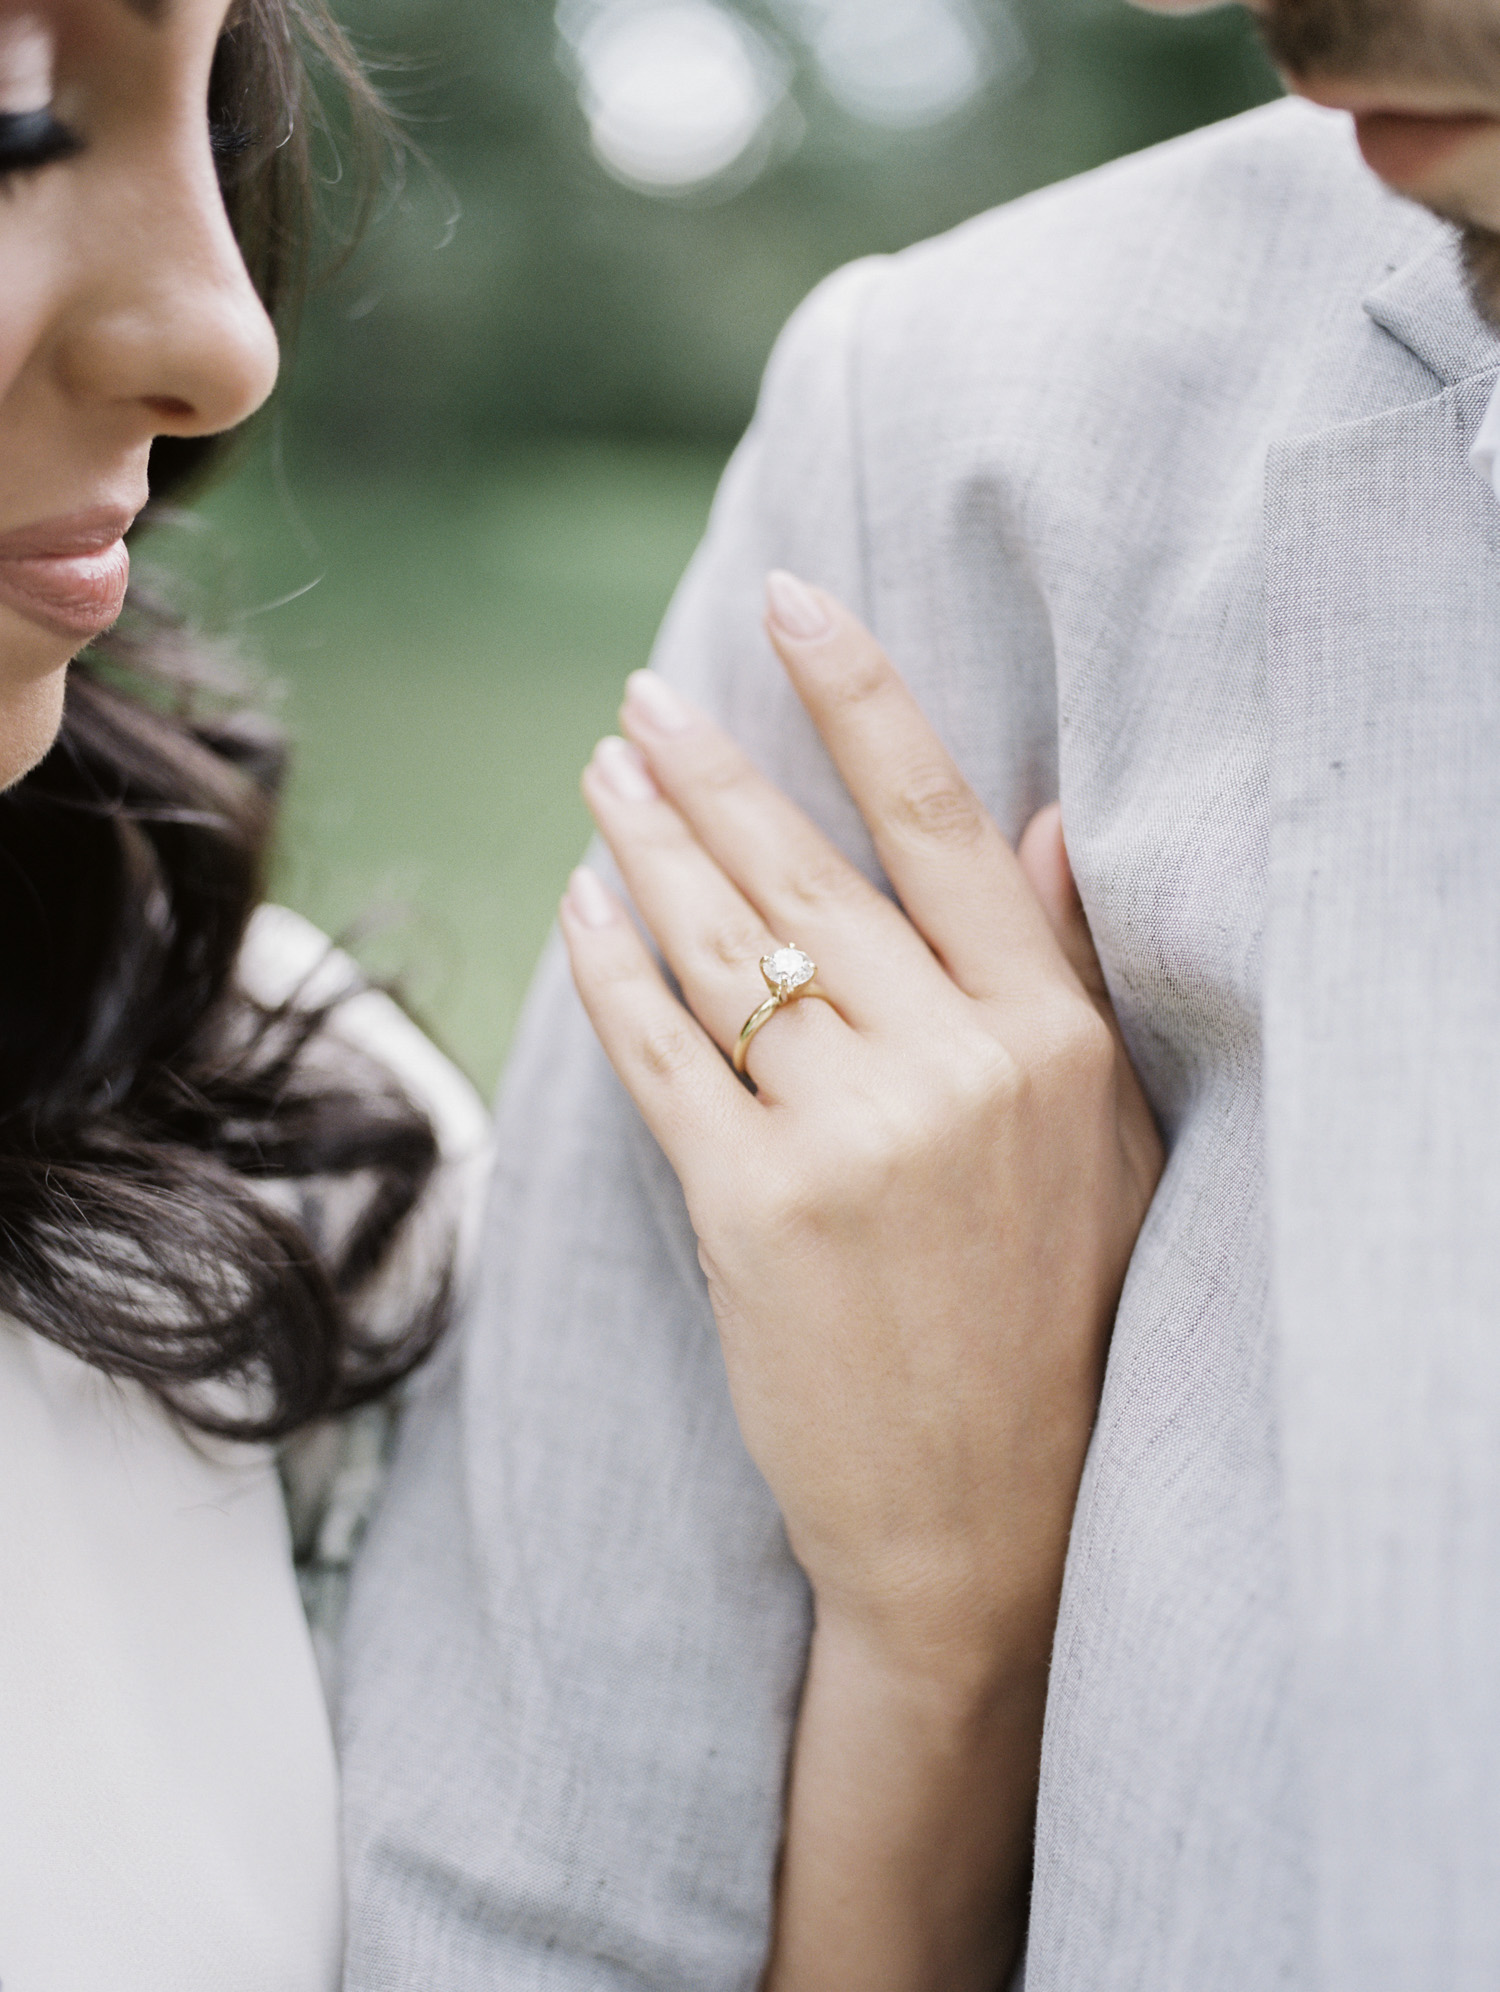 A woman's solitaire diamond engagement ring is seen close-up as she holds her man's arm during their engagement photos on film in Michigan